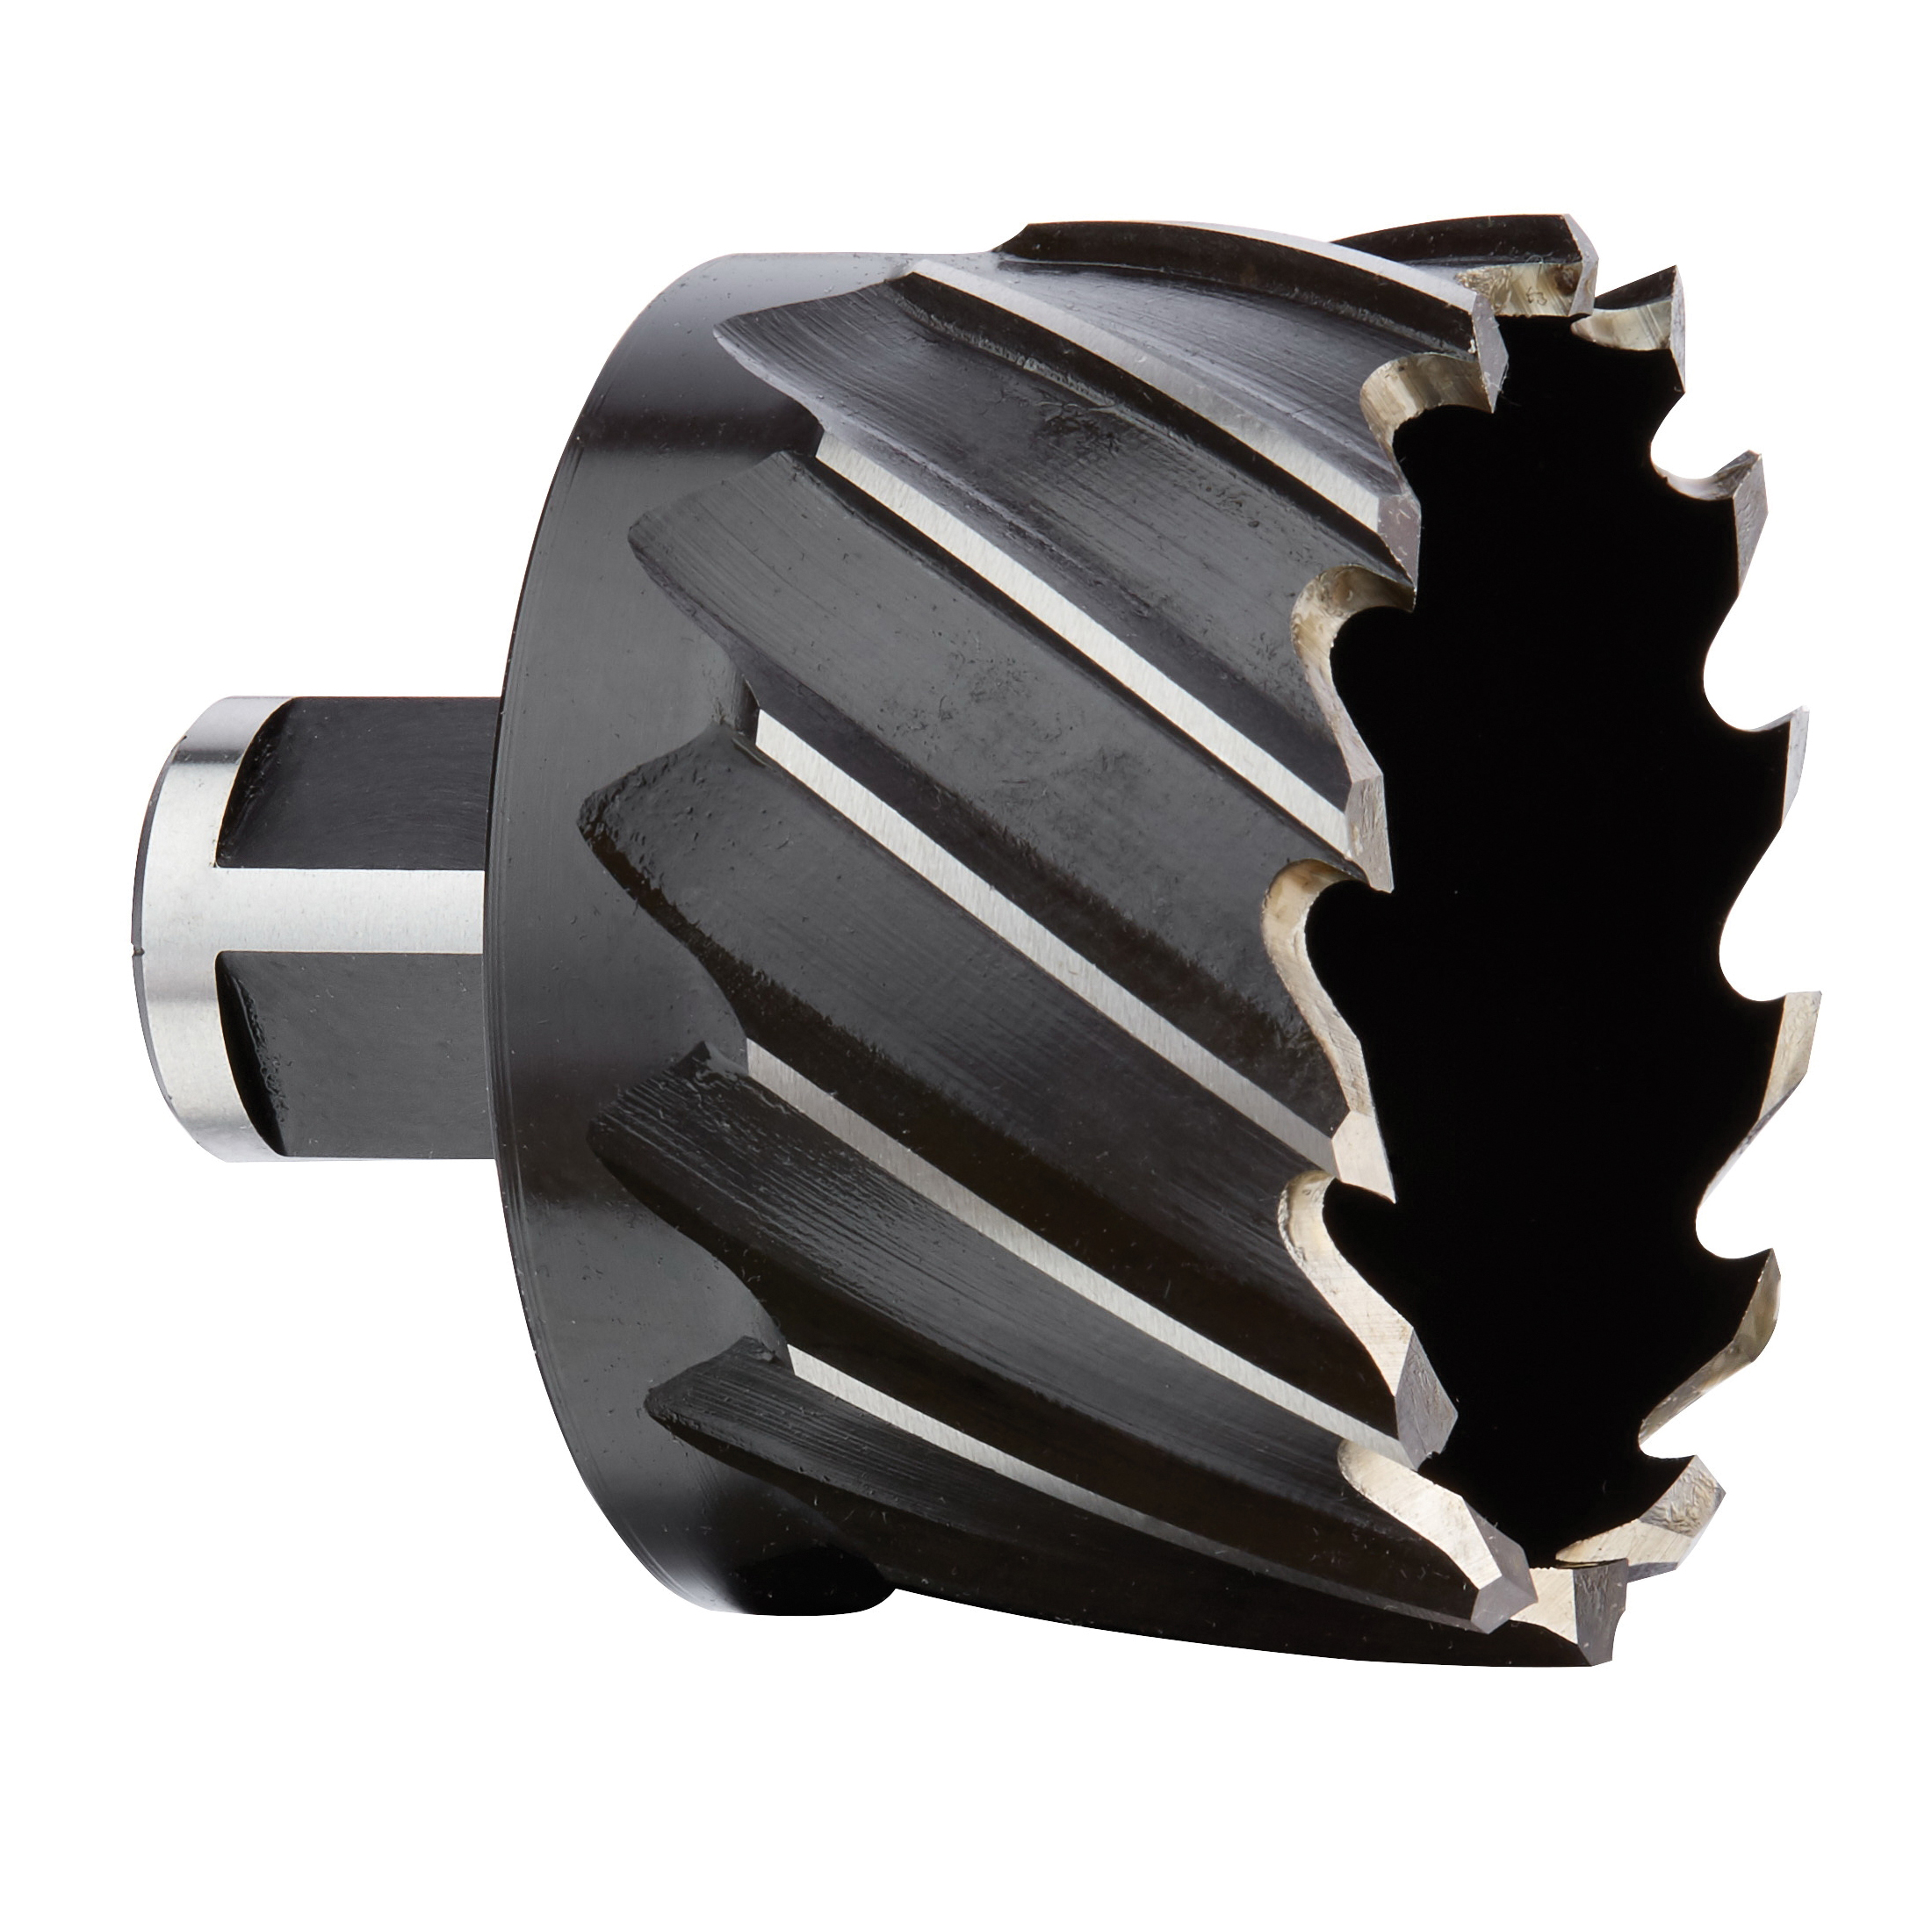 Milwaukee® 49-59-2006 Annular Cutter, 2-1/16 in Dia Cutter, 1 in D Cutting, HSS, Black Oxide, Weldon Shank